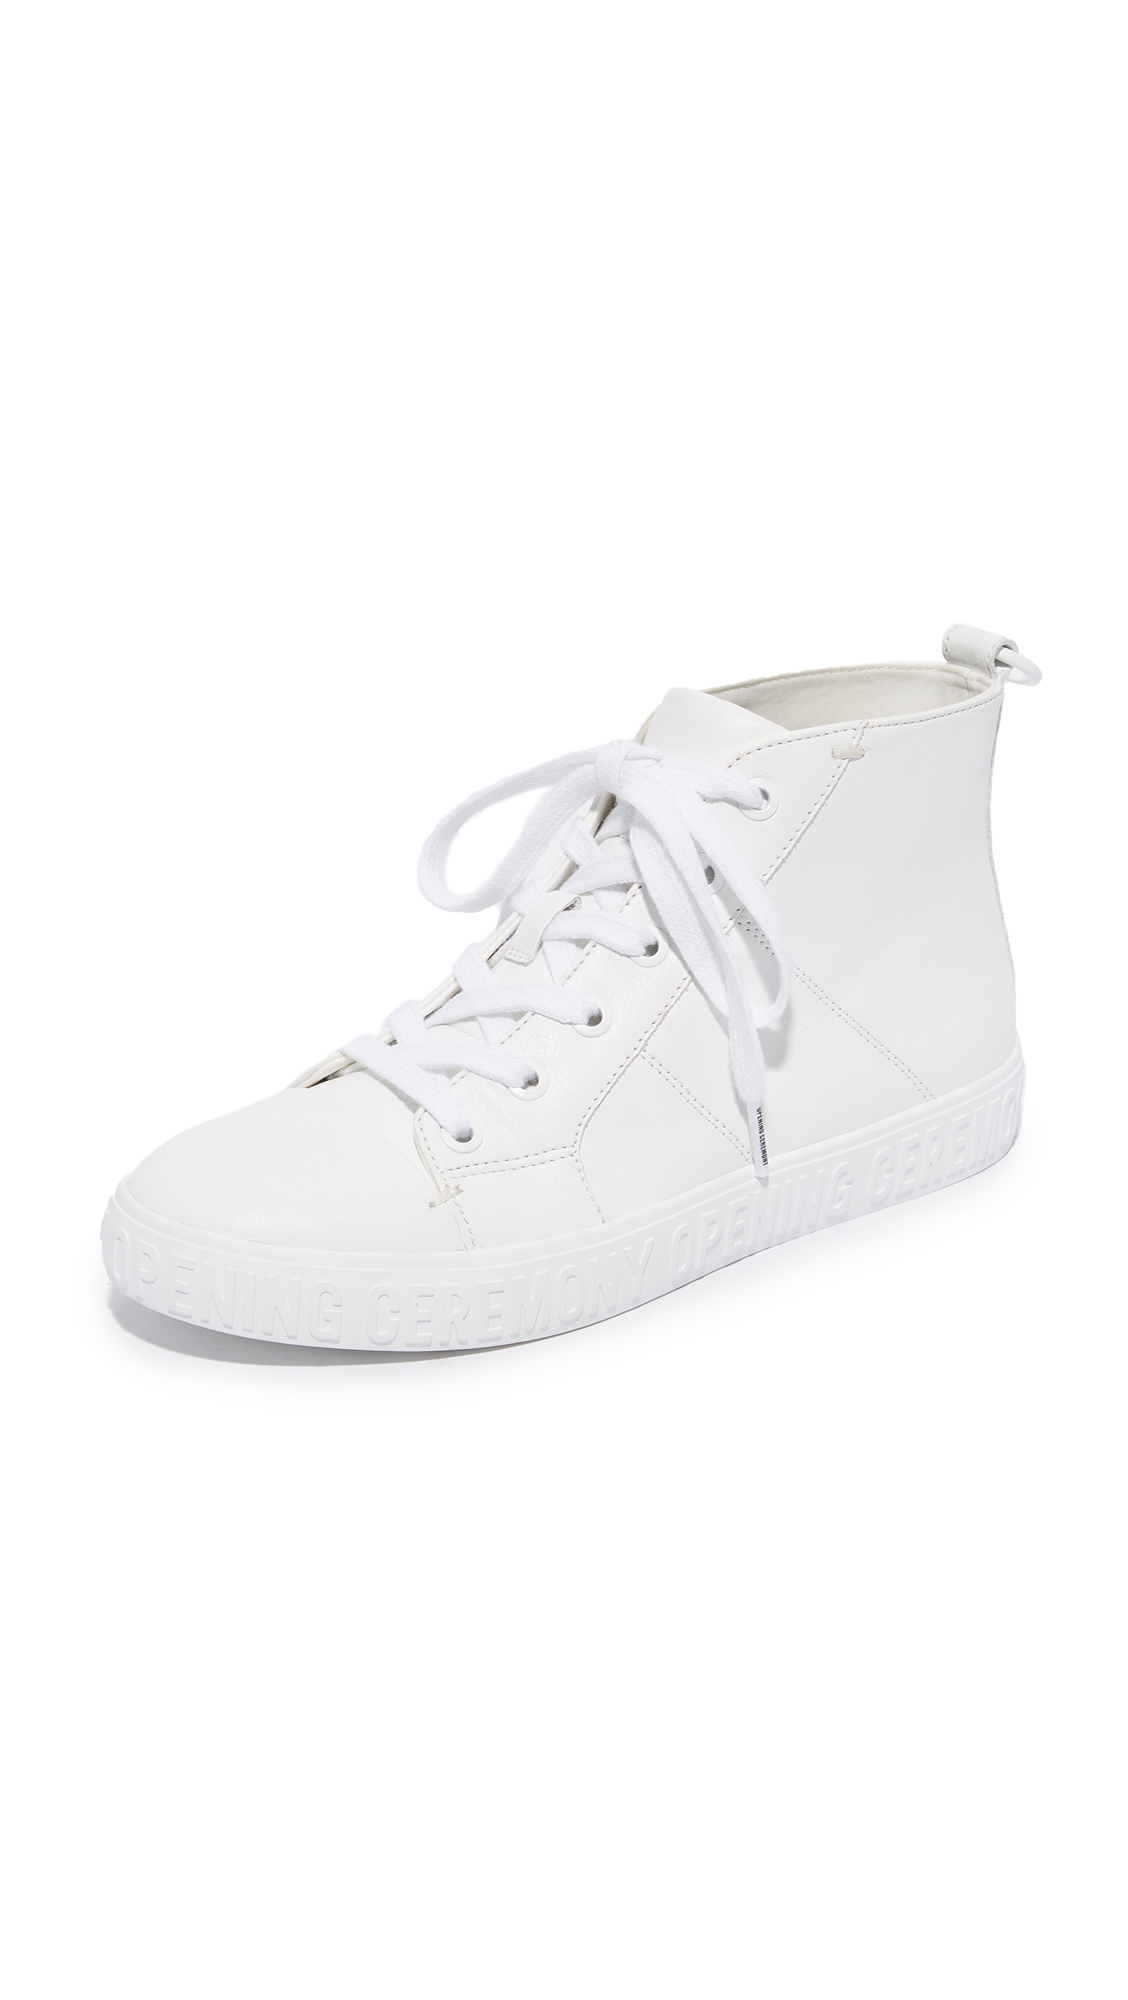 Opening Ceremony Ericca Leather High Top Sneakers - White